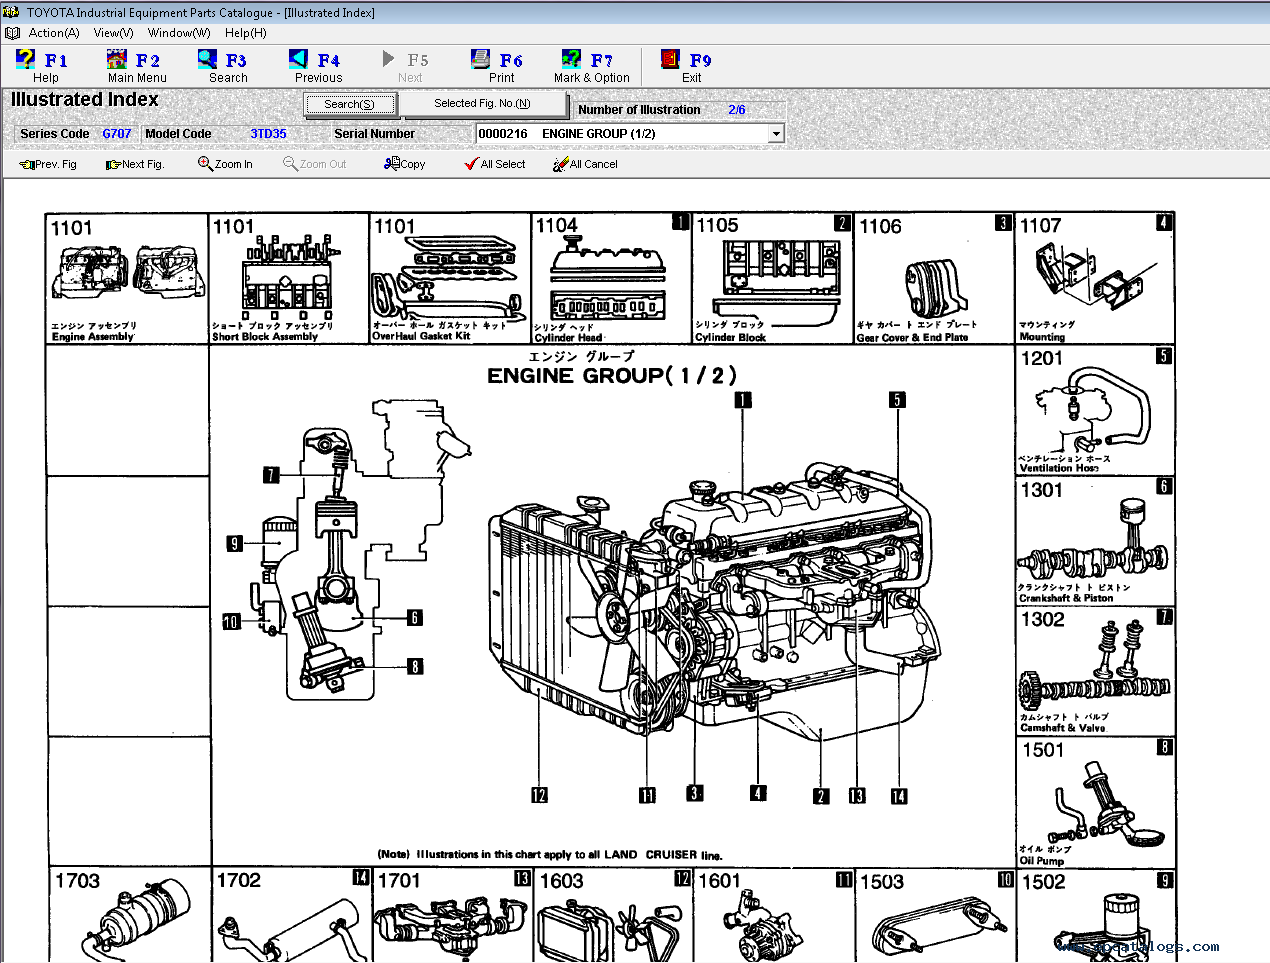 spare parts catalog Toyota Industrial Equipment v1.96 Parts Catalog - 2